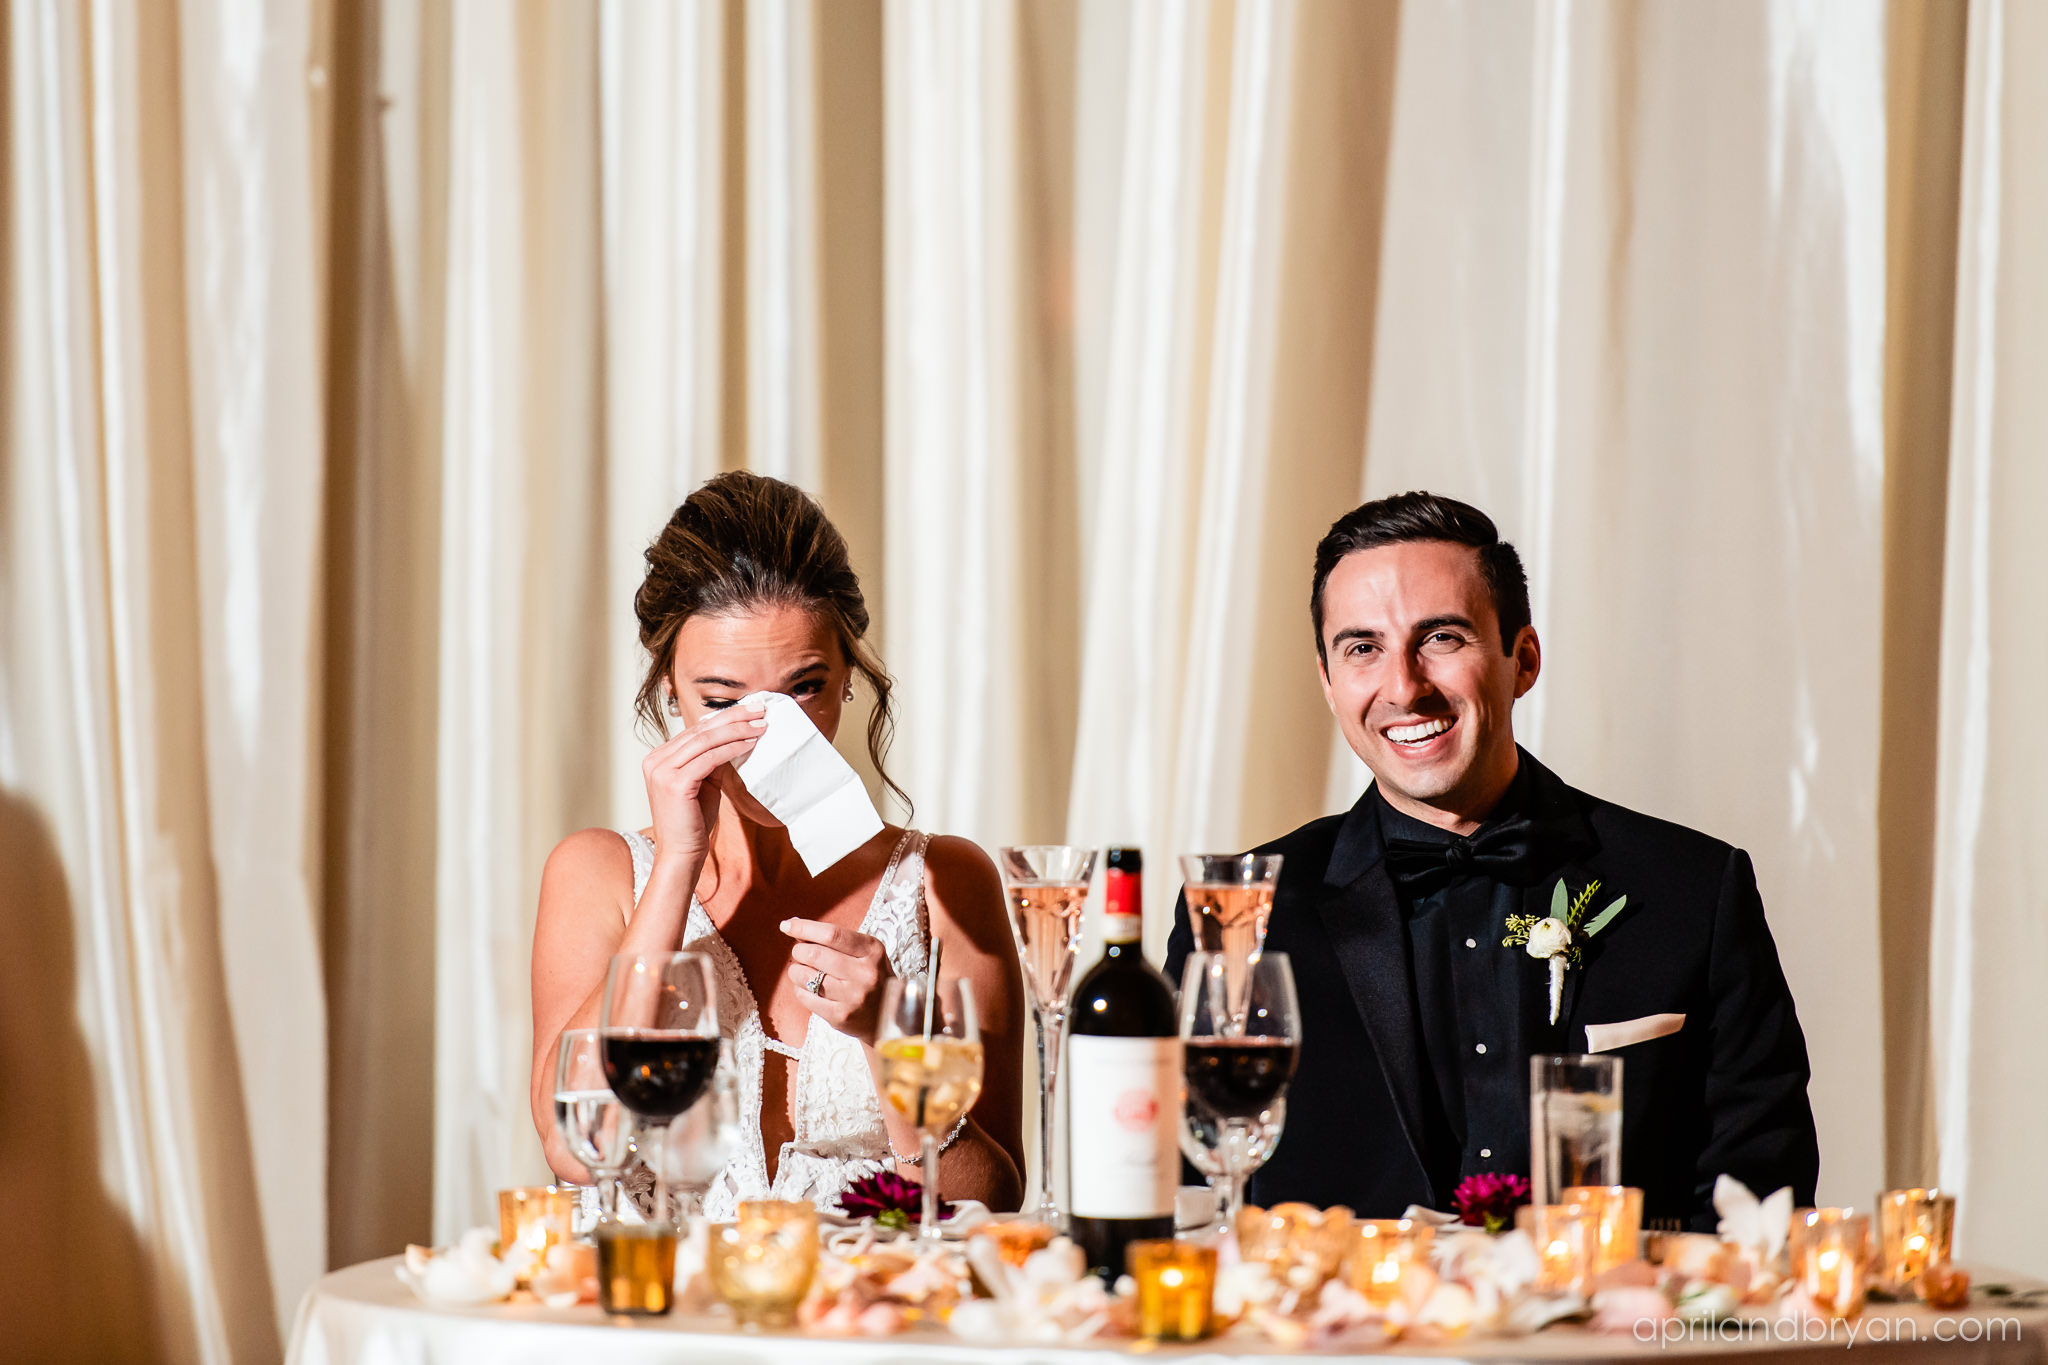 Speeches have the bride in tears at the Franklin Institute in Philadelphia. All tears and smiles captured by April & Bryan Photography. Featured on Dream Weddings.